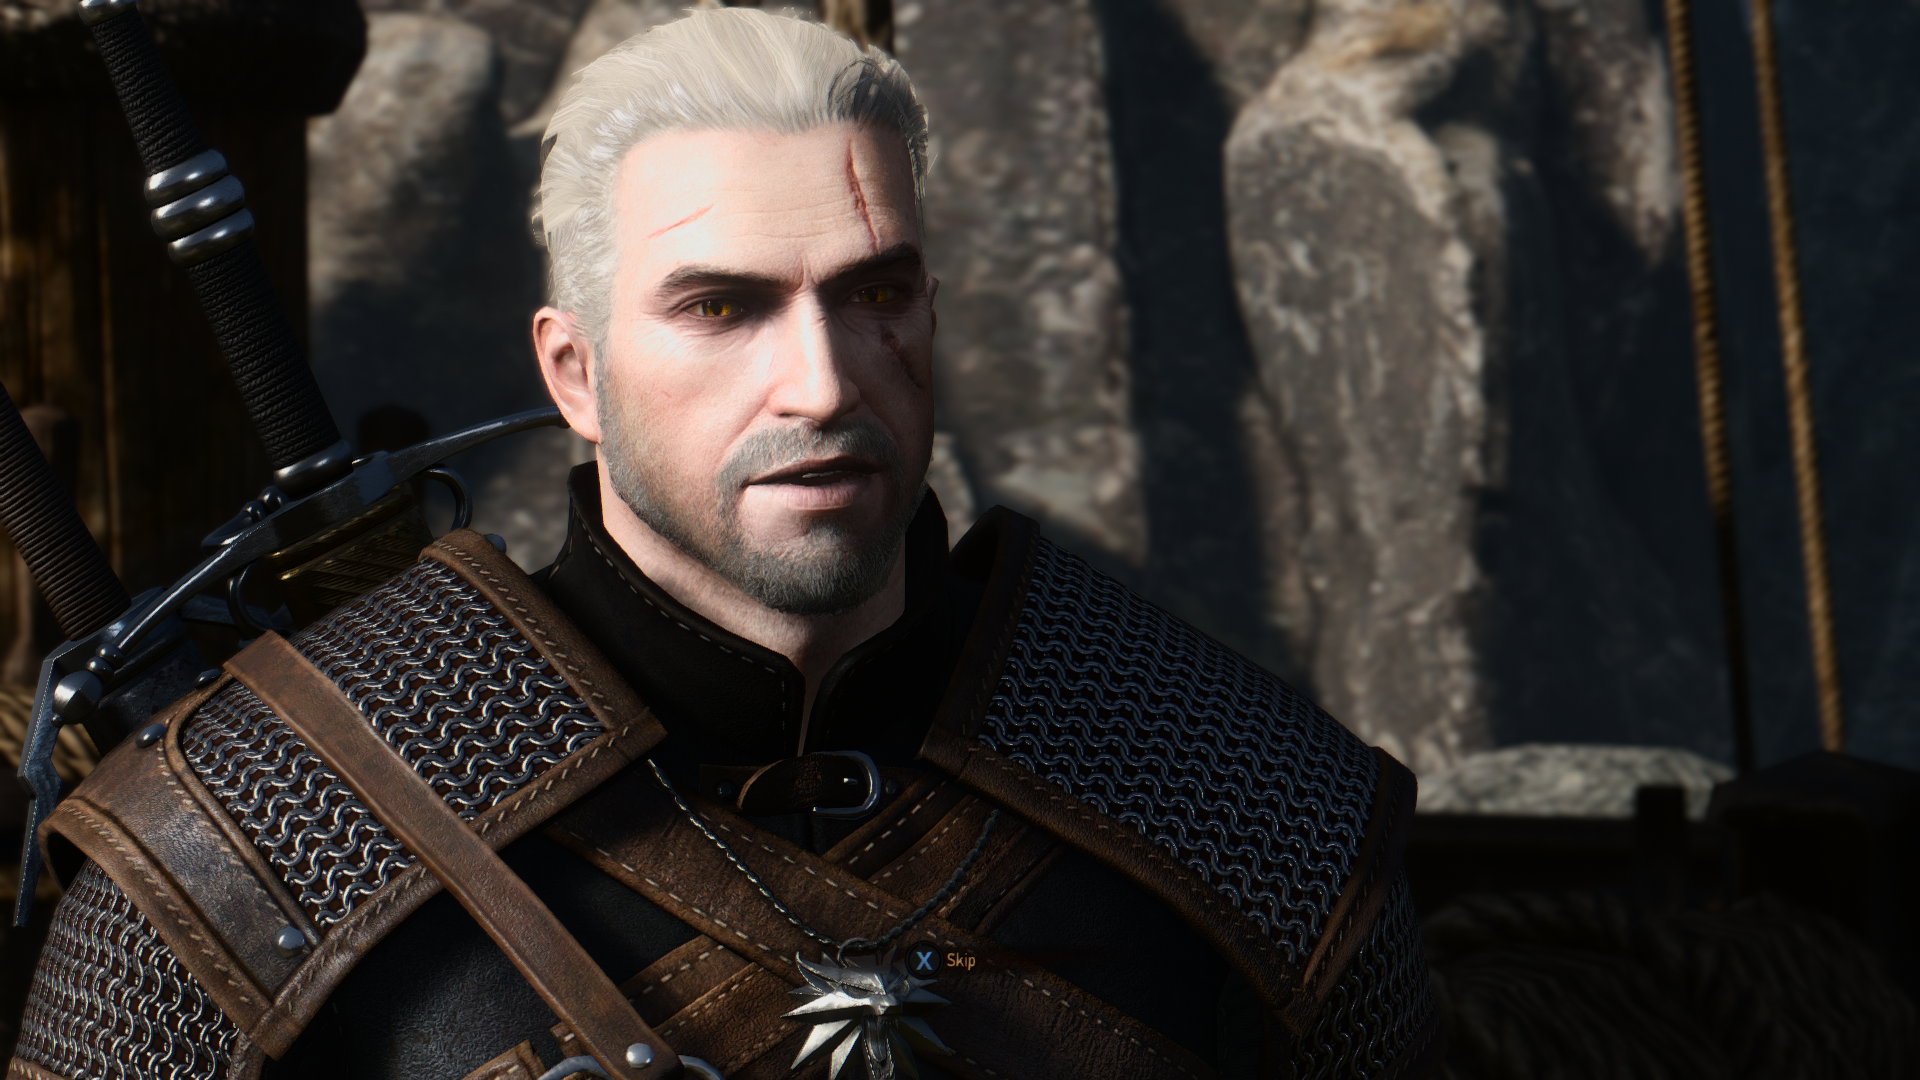 Witcher 3 Hair Styles: Gwent Player, Monster Slayer